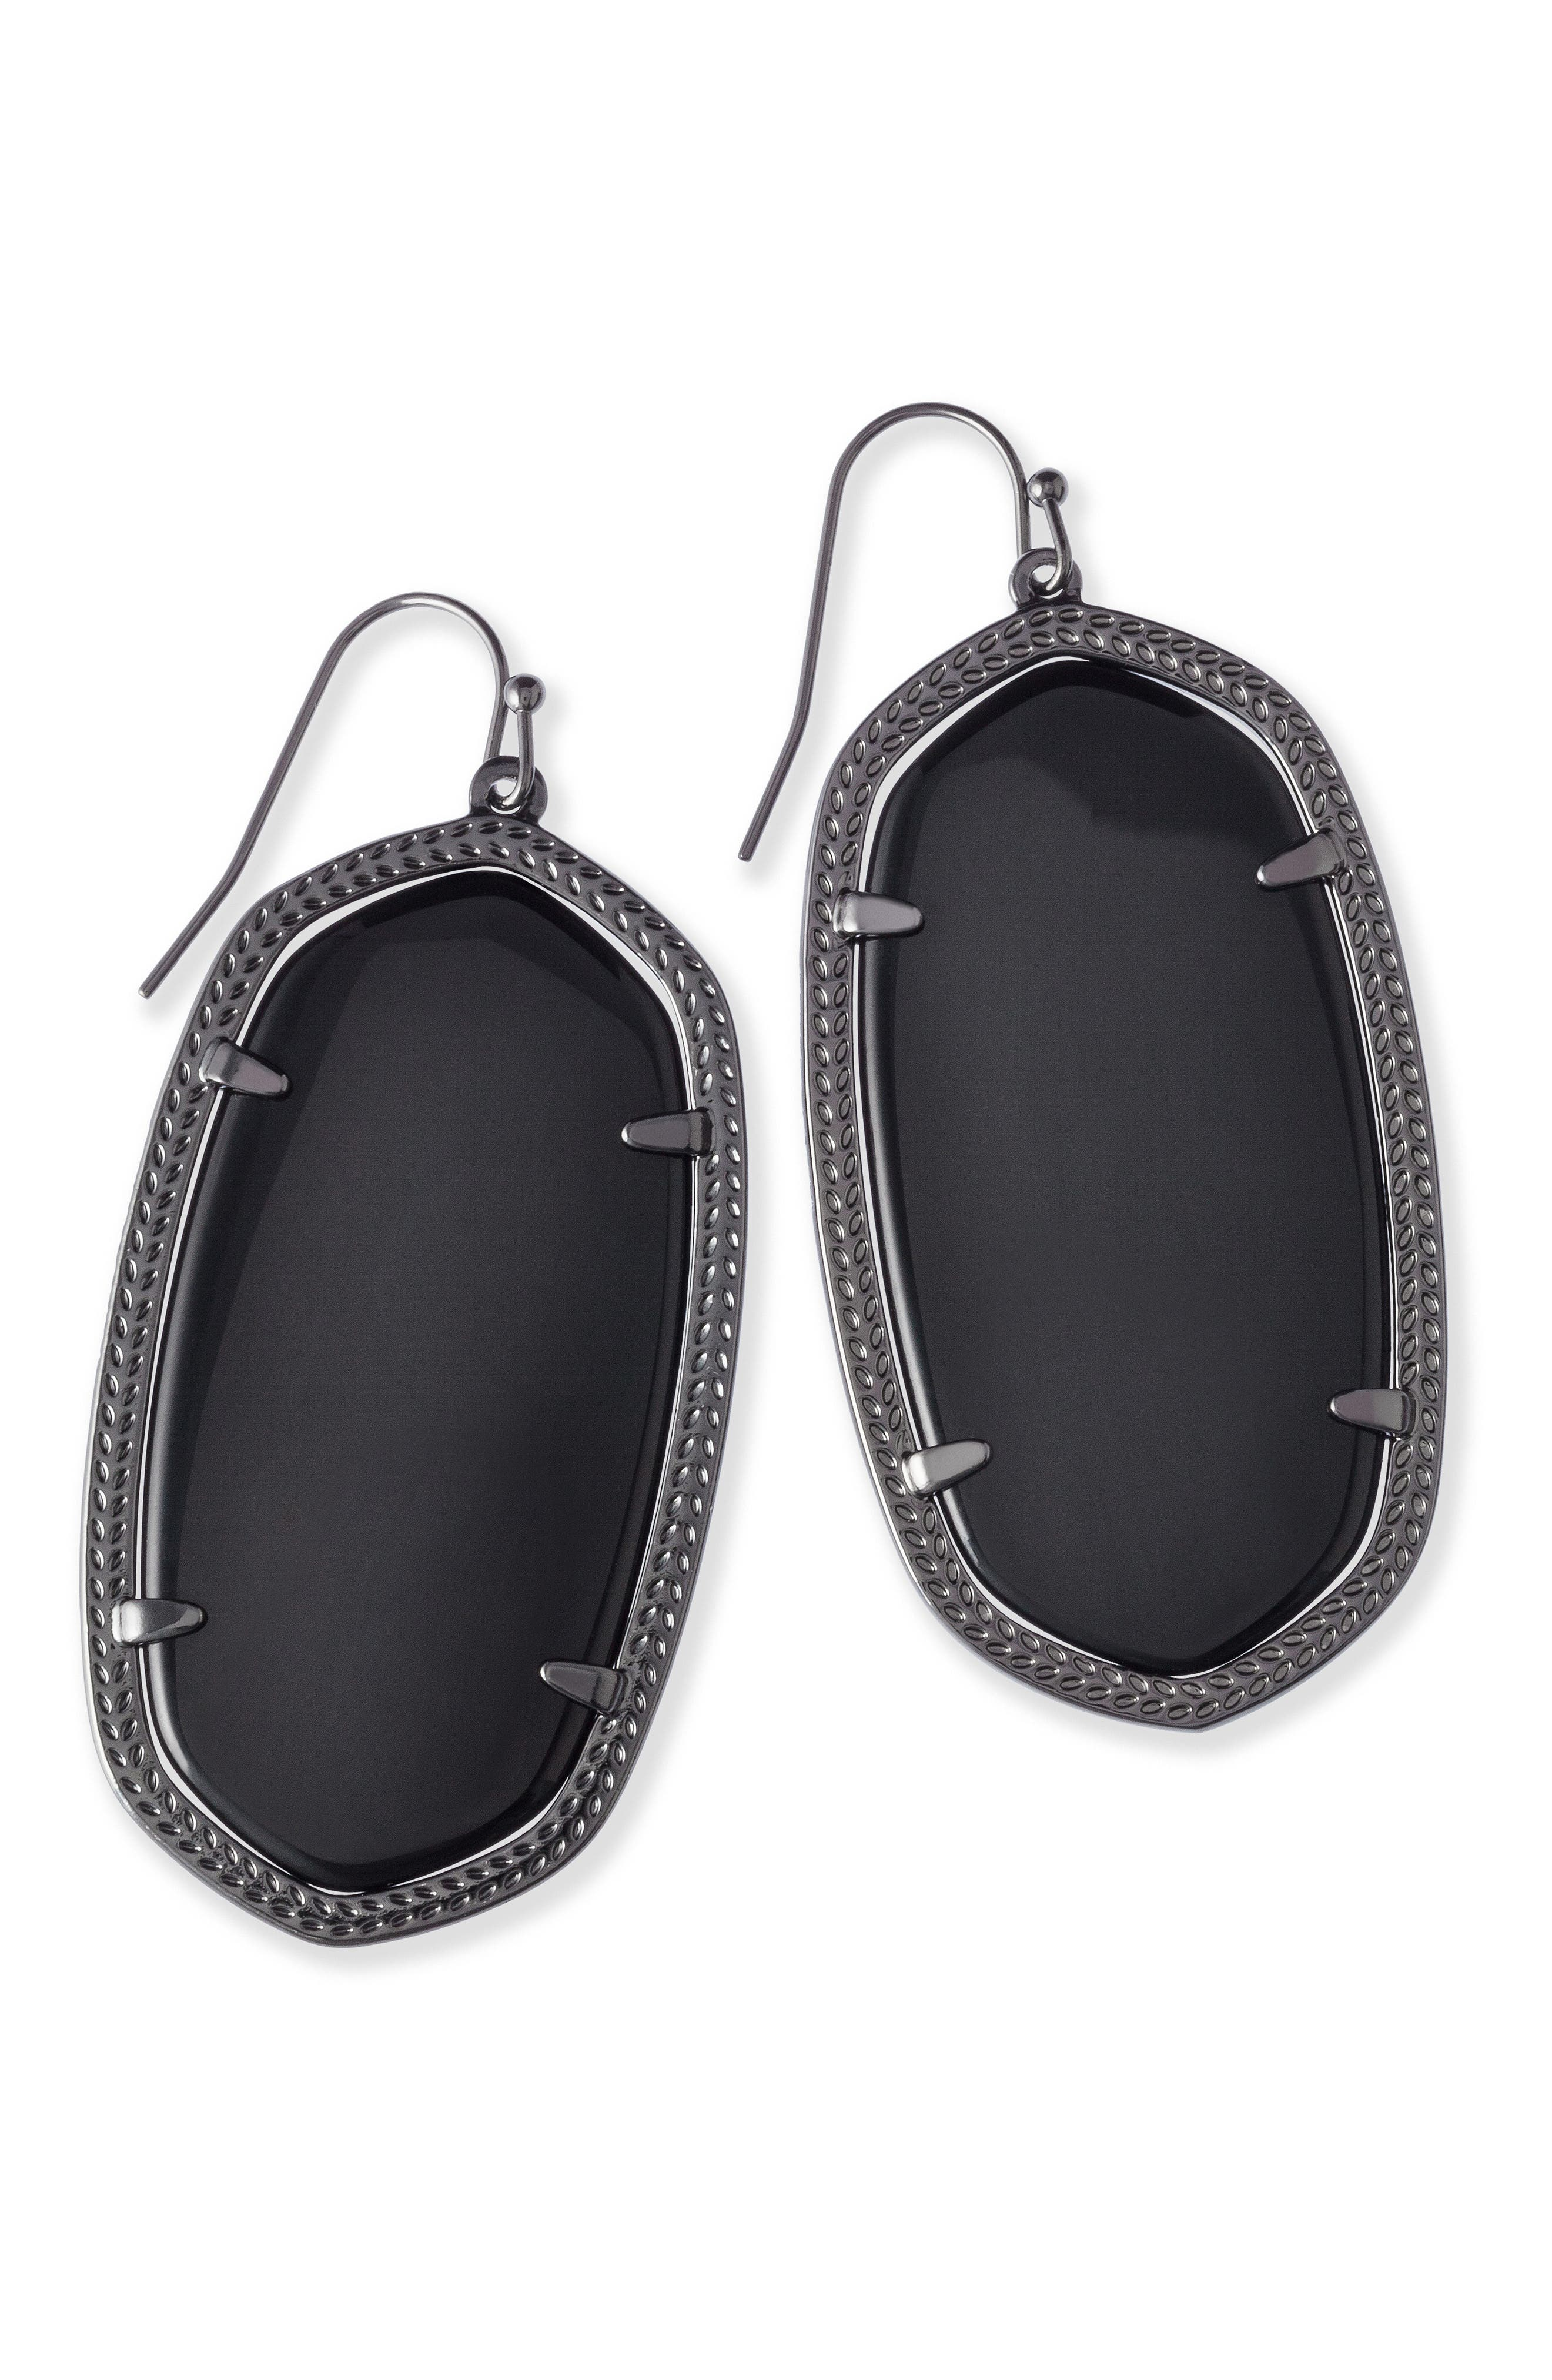 Danielle - Large Oval Statement Earrings,                             Alternate thumbnail 219, color,